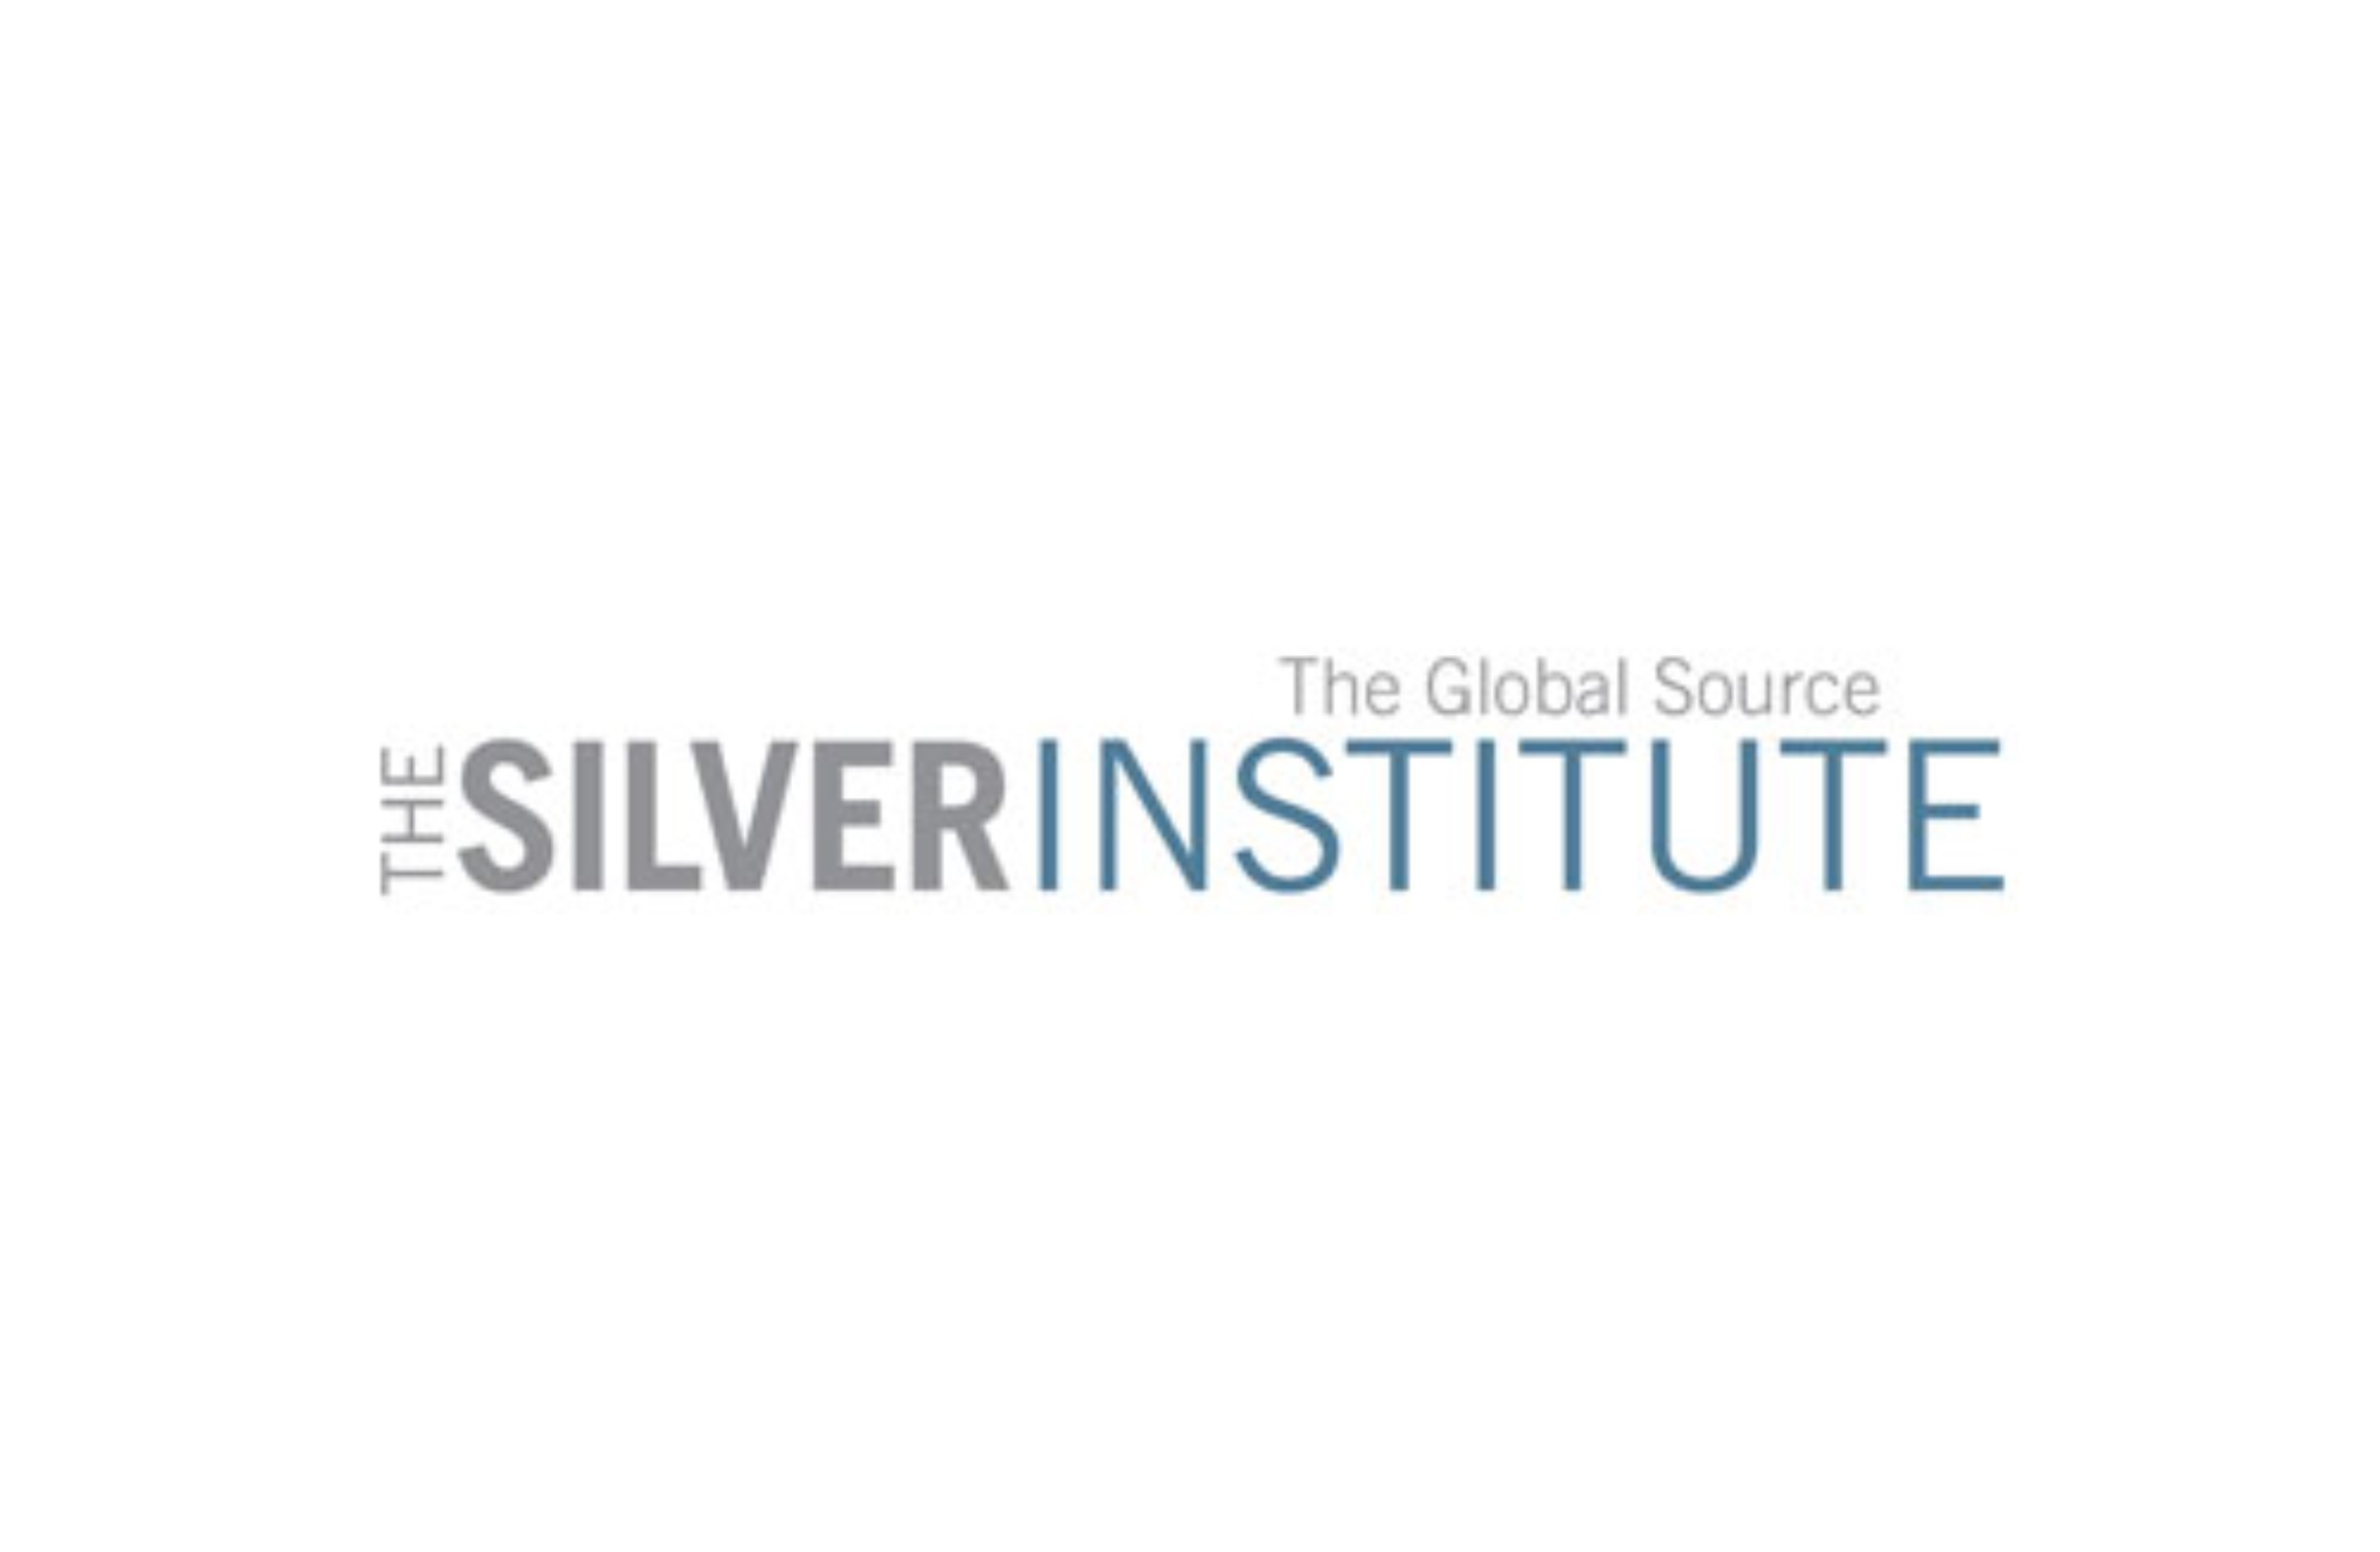 The Silver Institute: Silver News